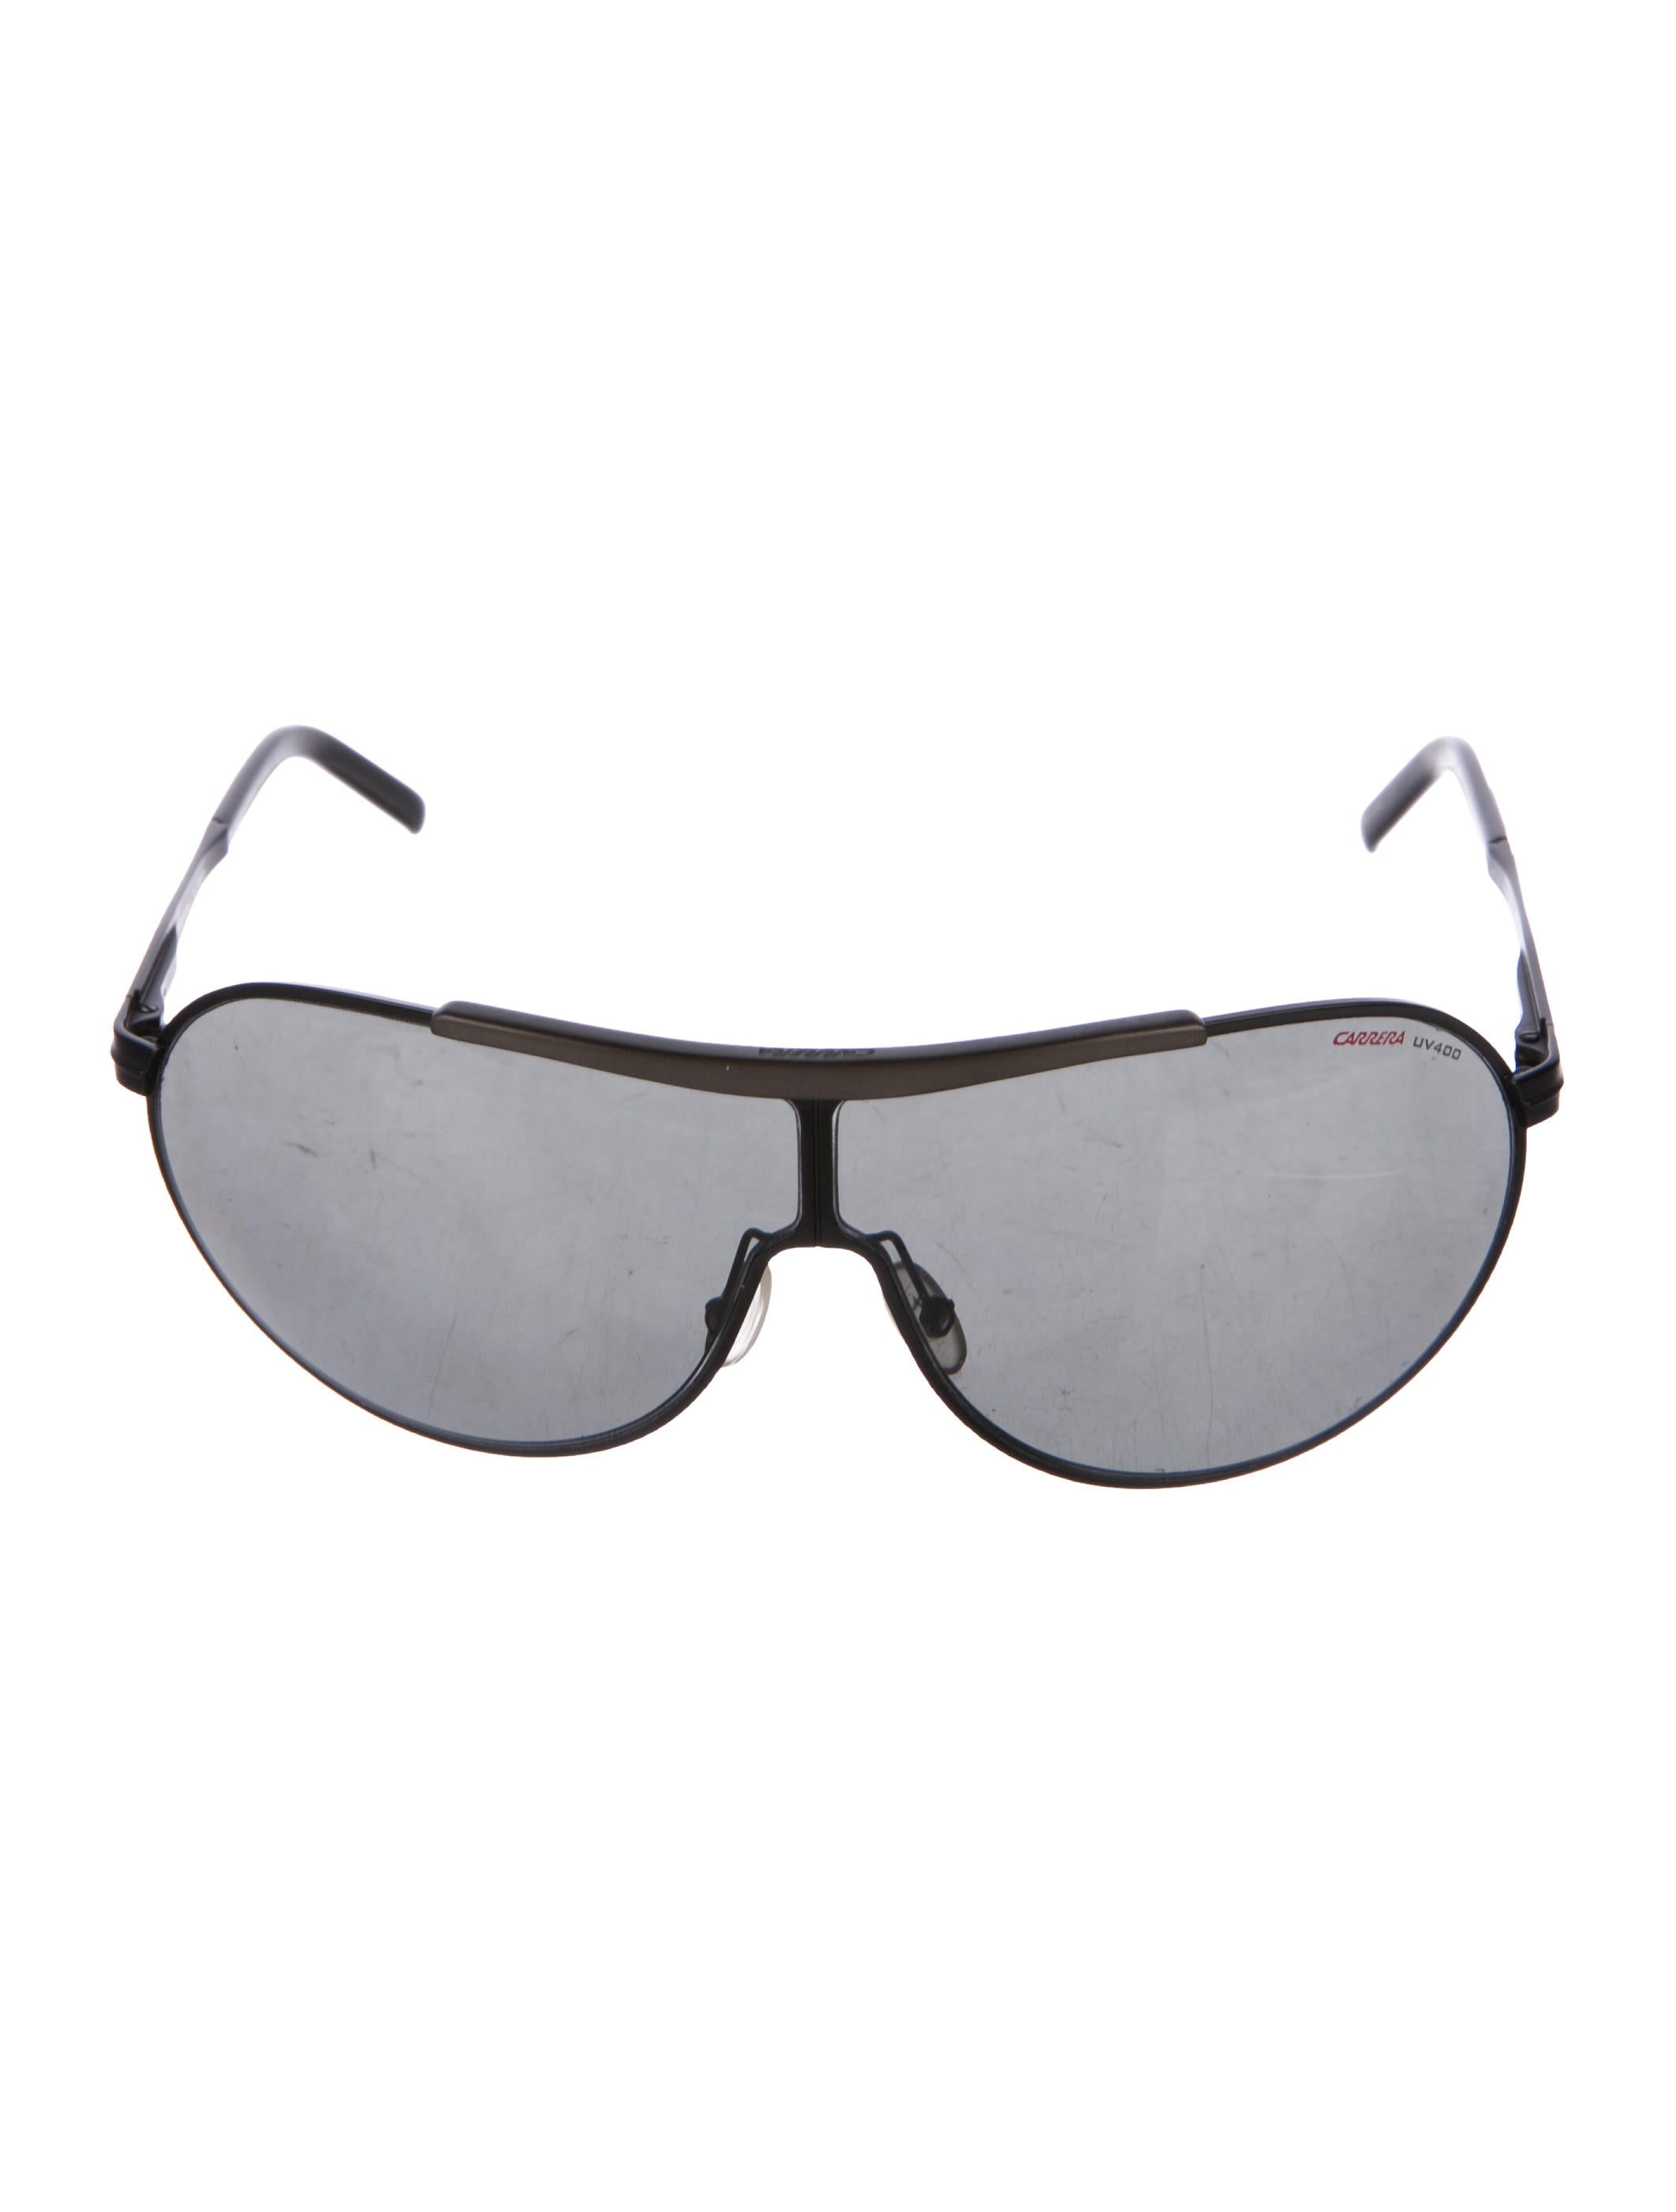 984d5a4761 Carrera Aviator Tinted Sunglasses - Accessories - WCRRA20117